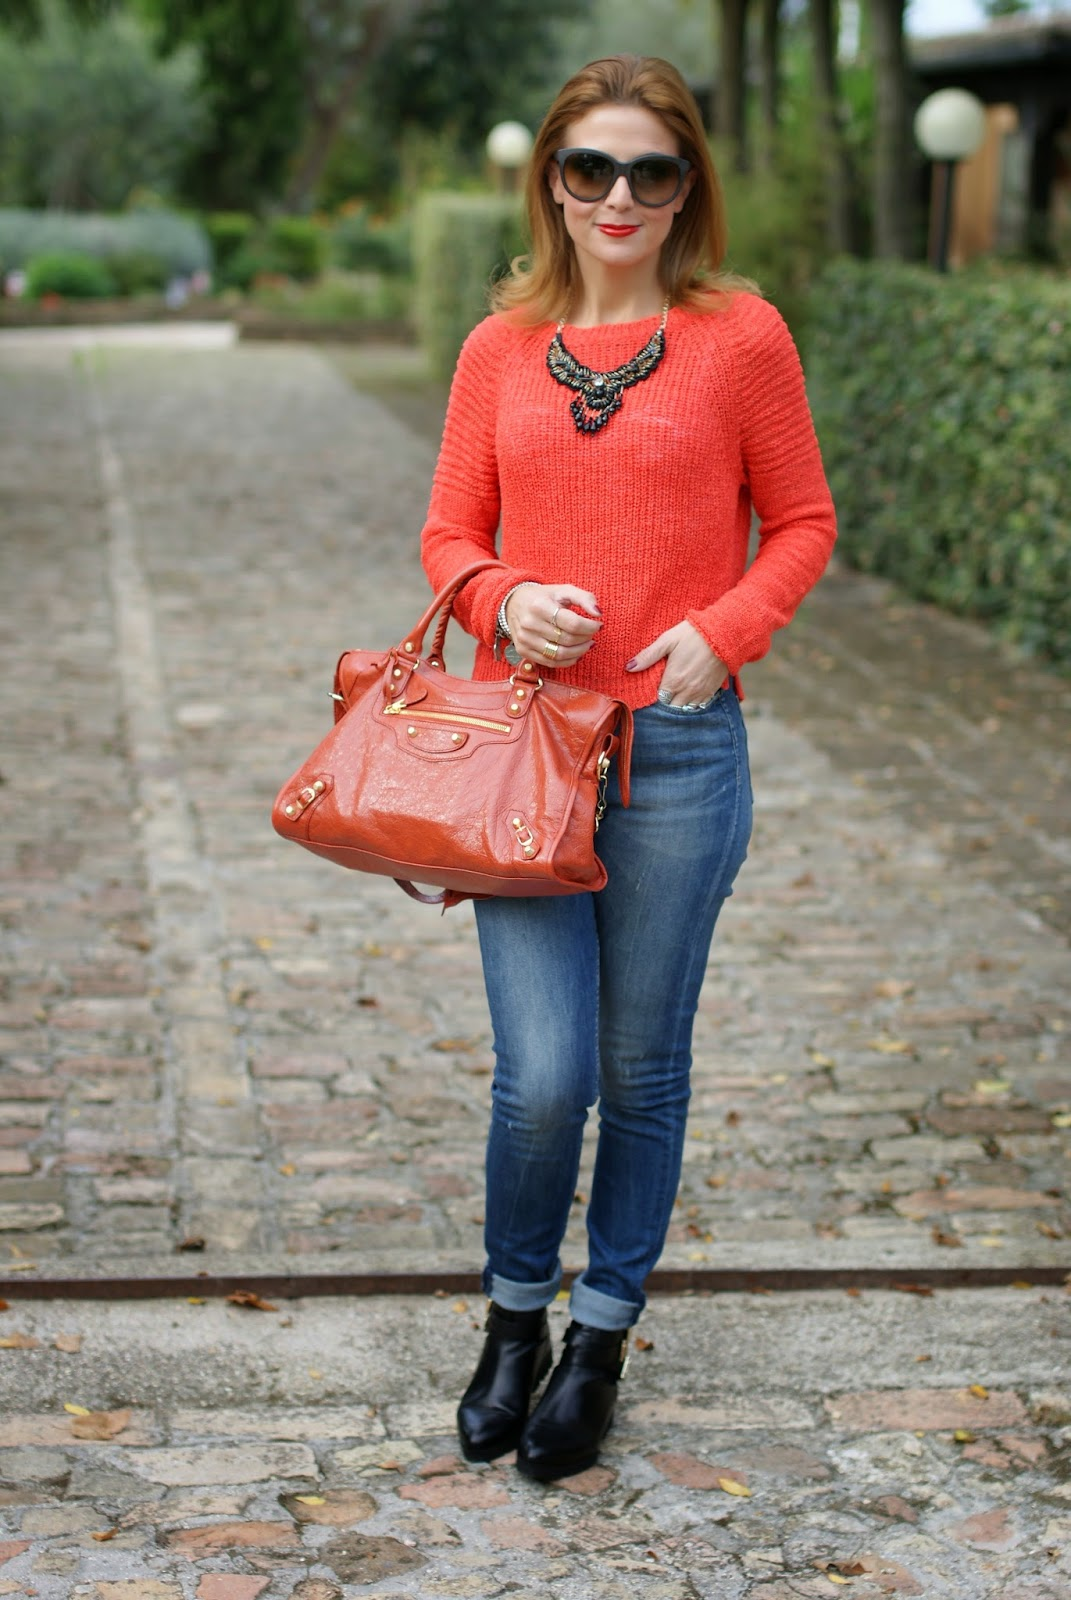 Balenciaga City rouge ambre bag, Luca Barra jewels, cut out boots, Fashion and Cookies, fashion blogger